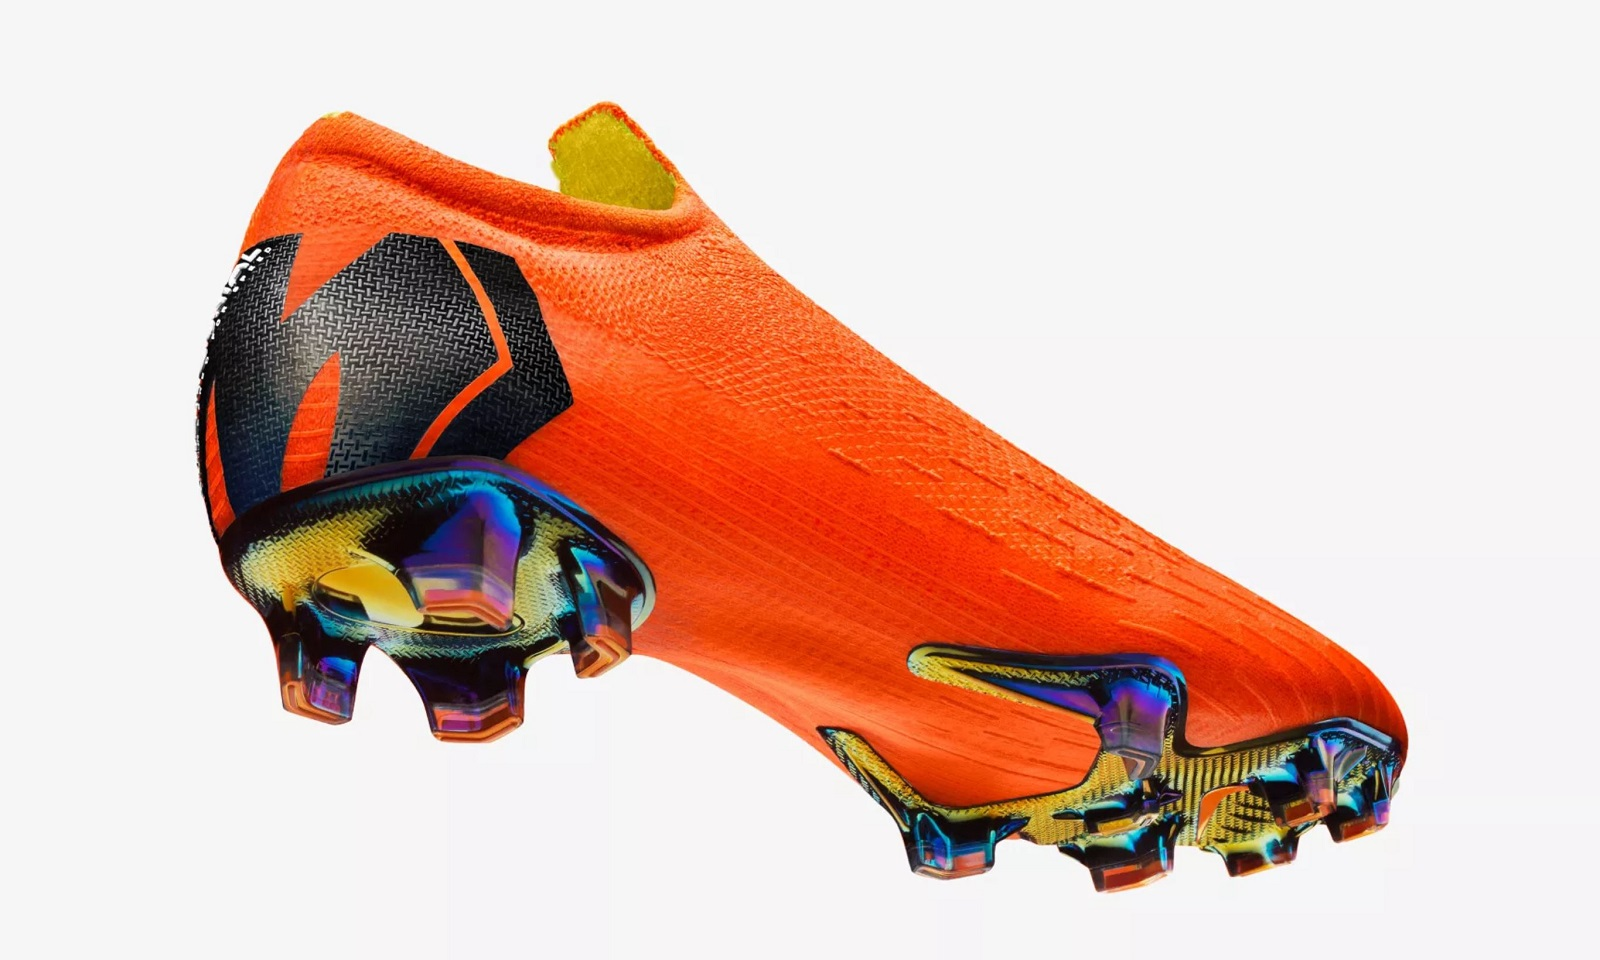 official photos d35d7 7ee37 Nike Mercurial Vapor 360 Elite Released | Soccer Cleats 101